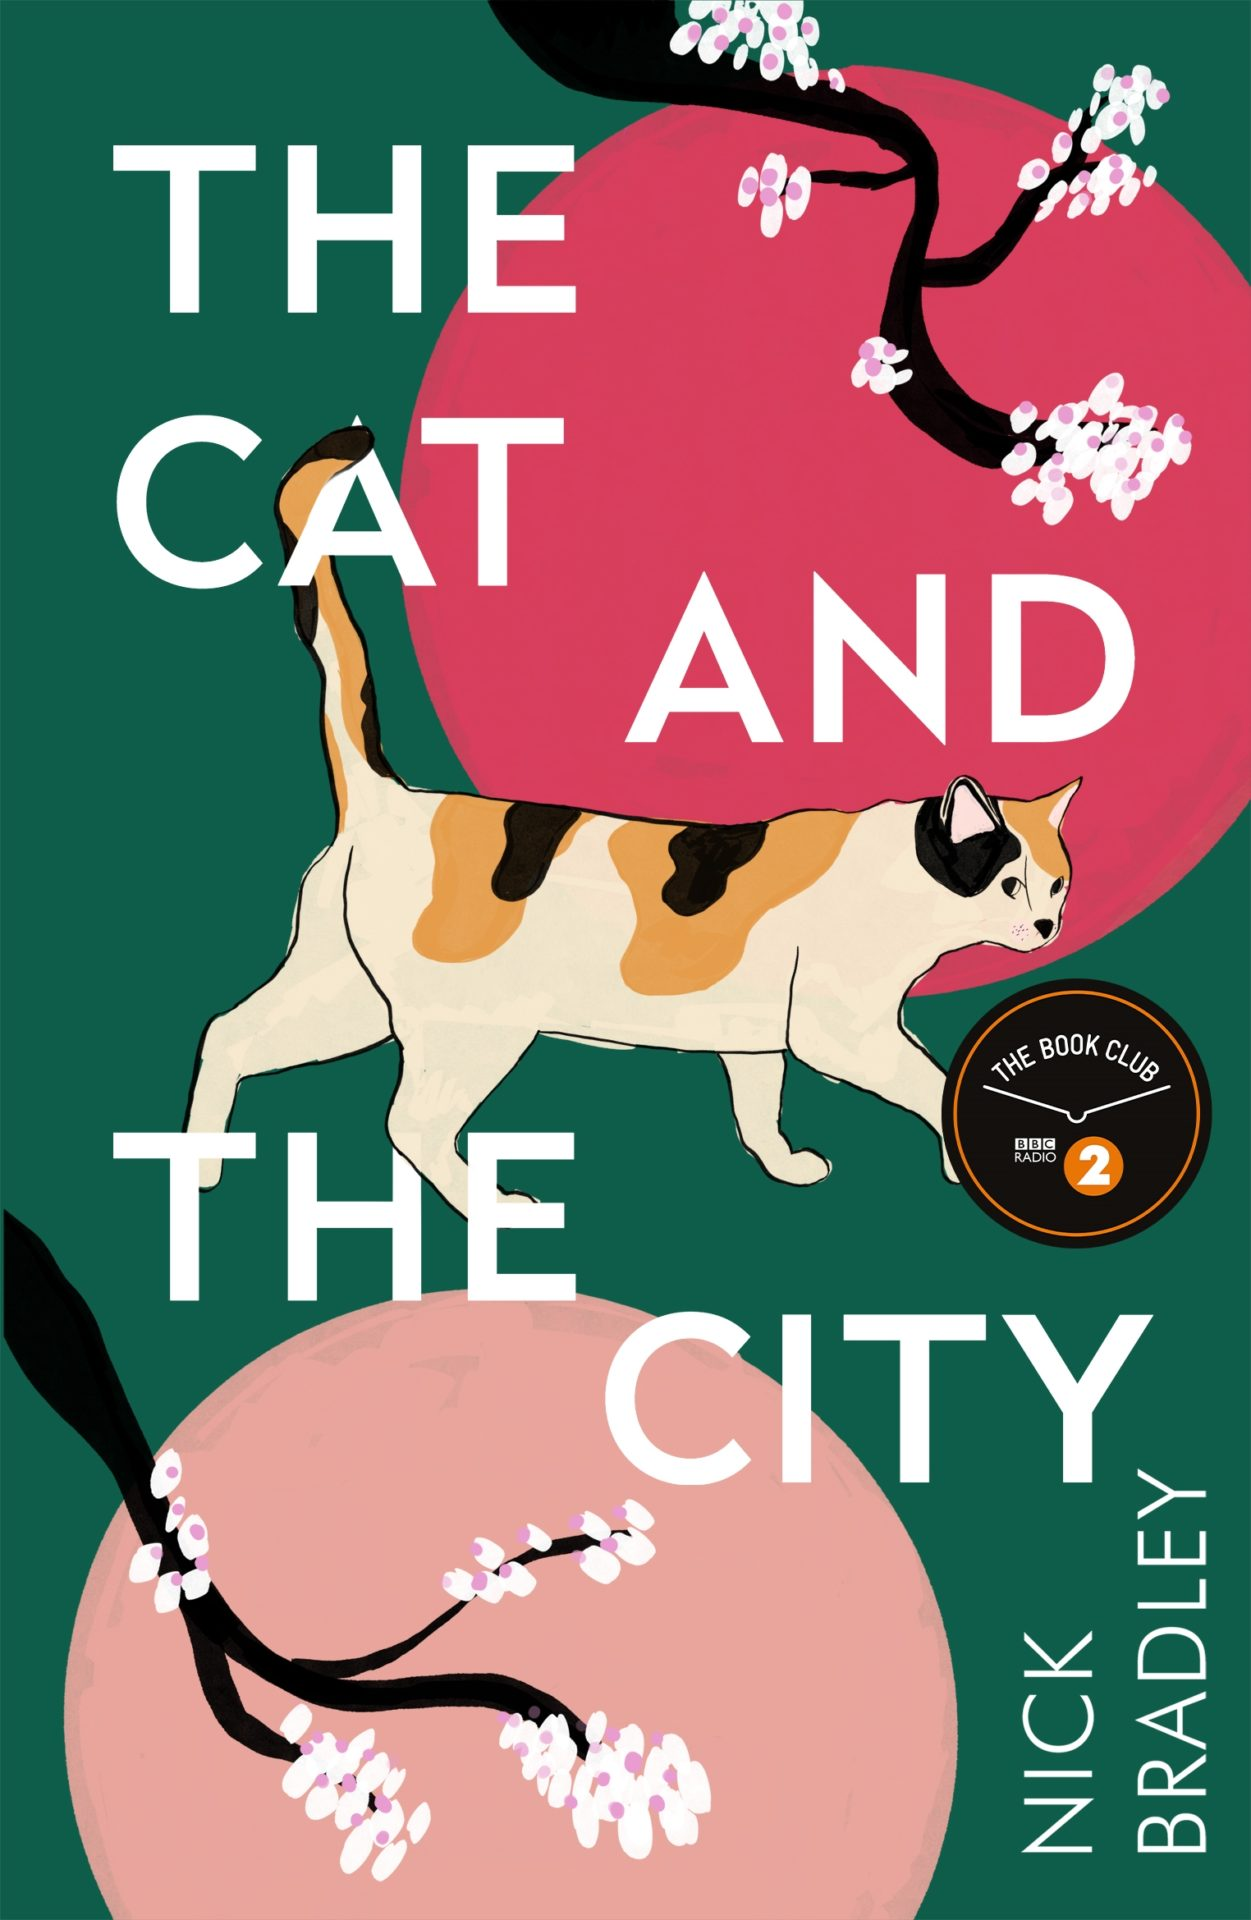 The Cat and The City by Nick Bradley